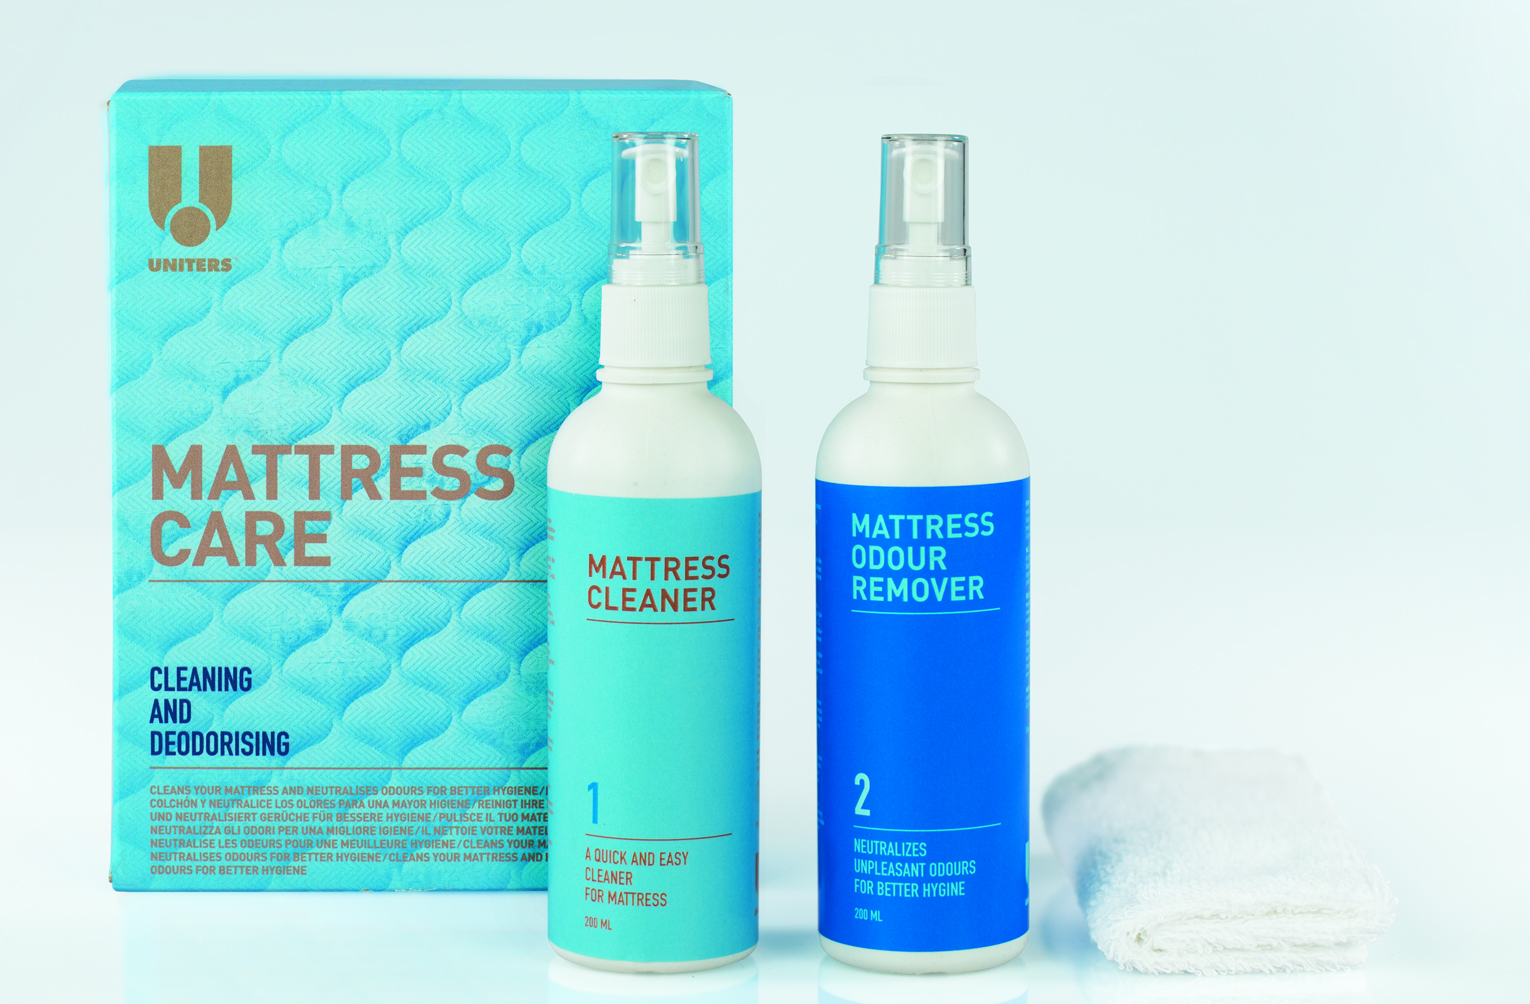 MATTRESS CARE KIT